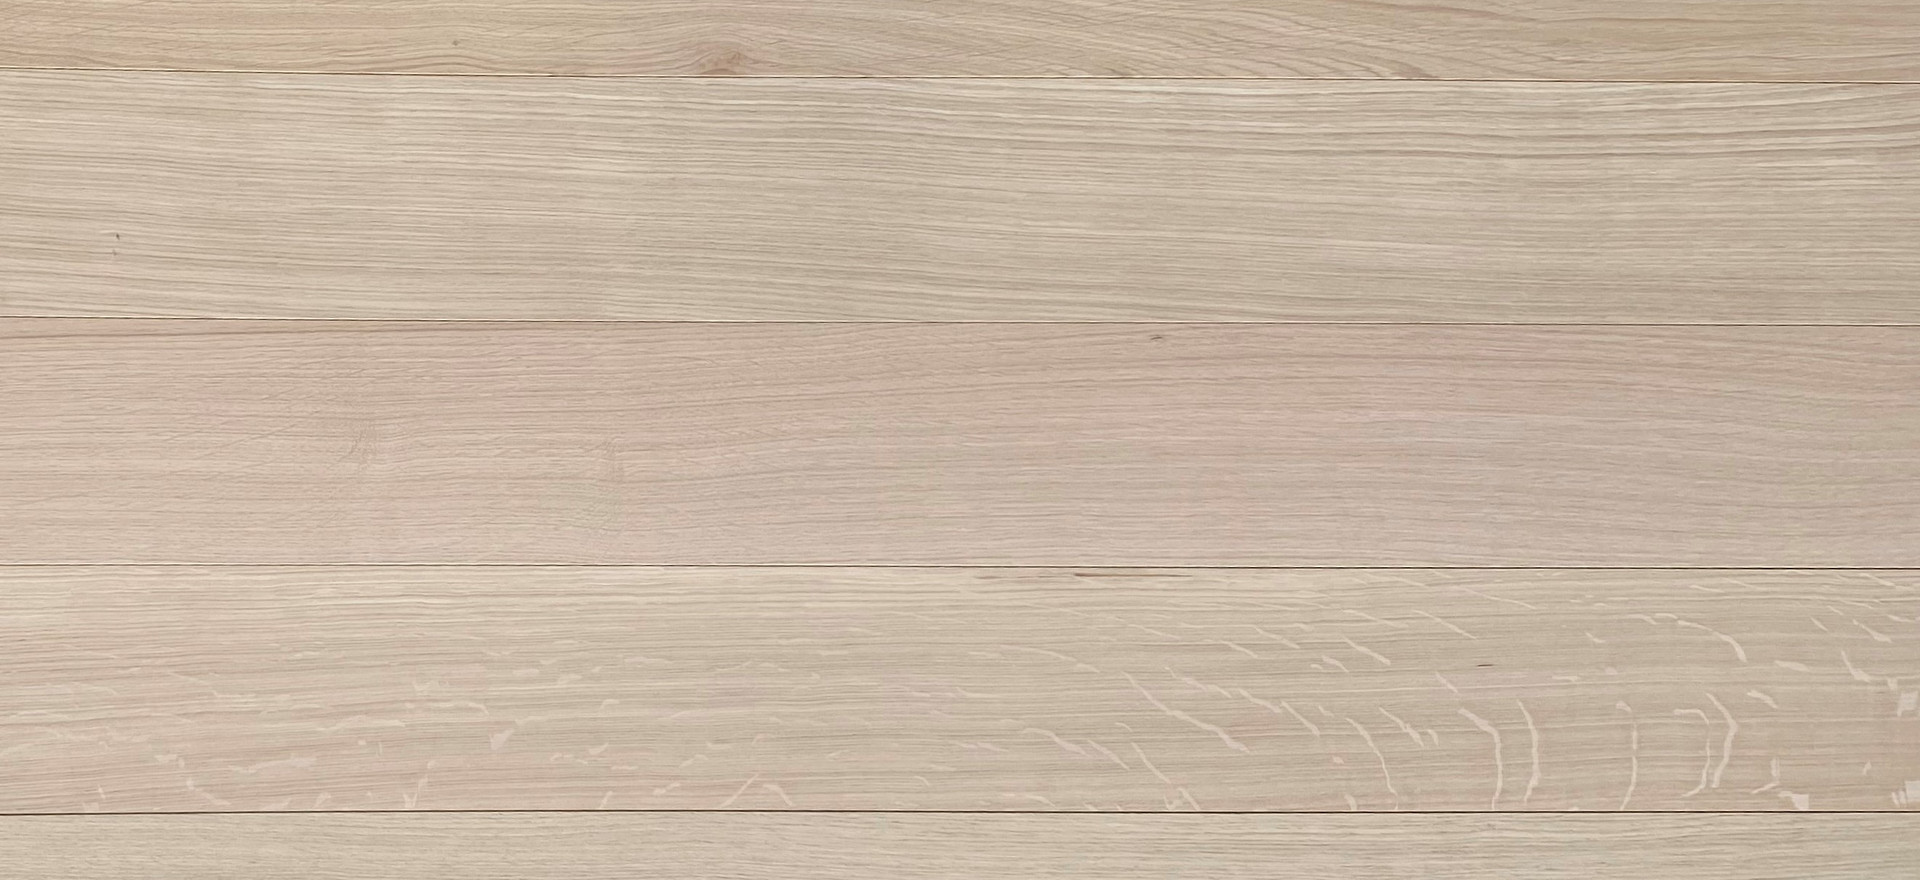 Rift & Quartered White Oak (Veneto Collection Only)  Radial cut, uniform colour, medullary ray or ray fleck allowed, extremely stable.